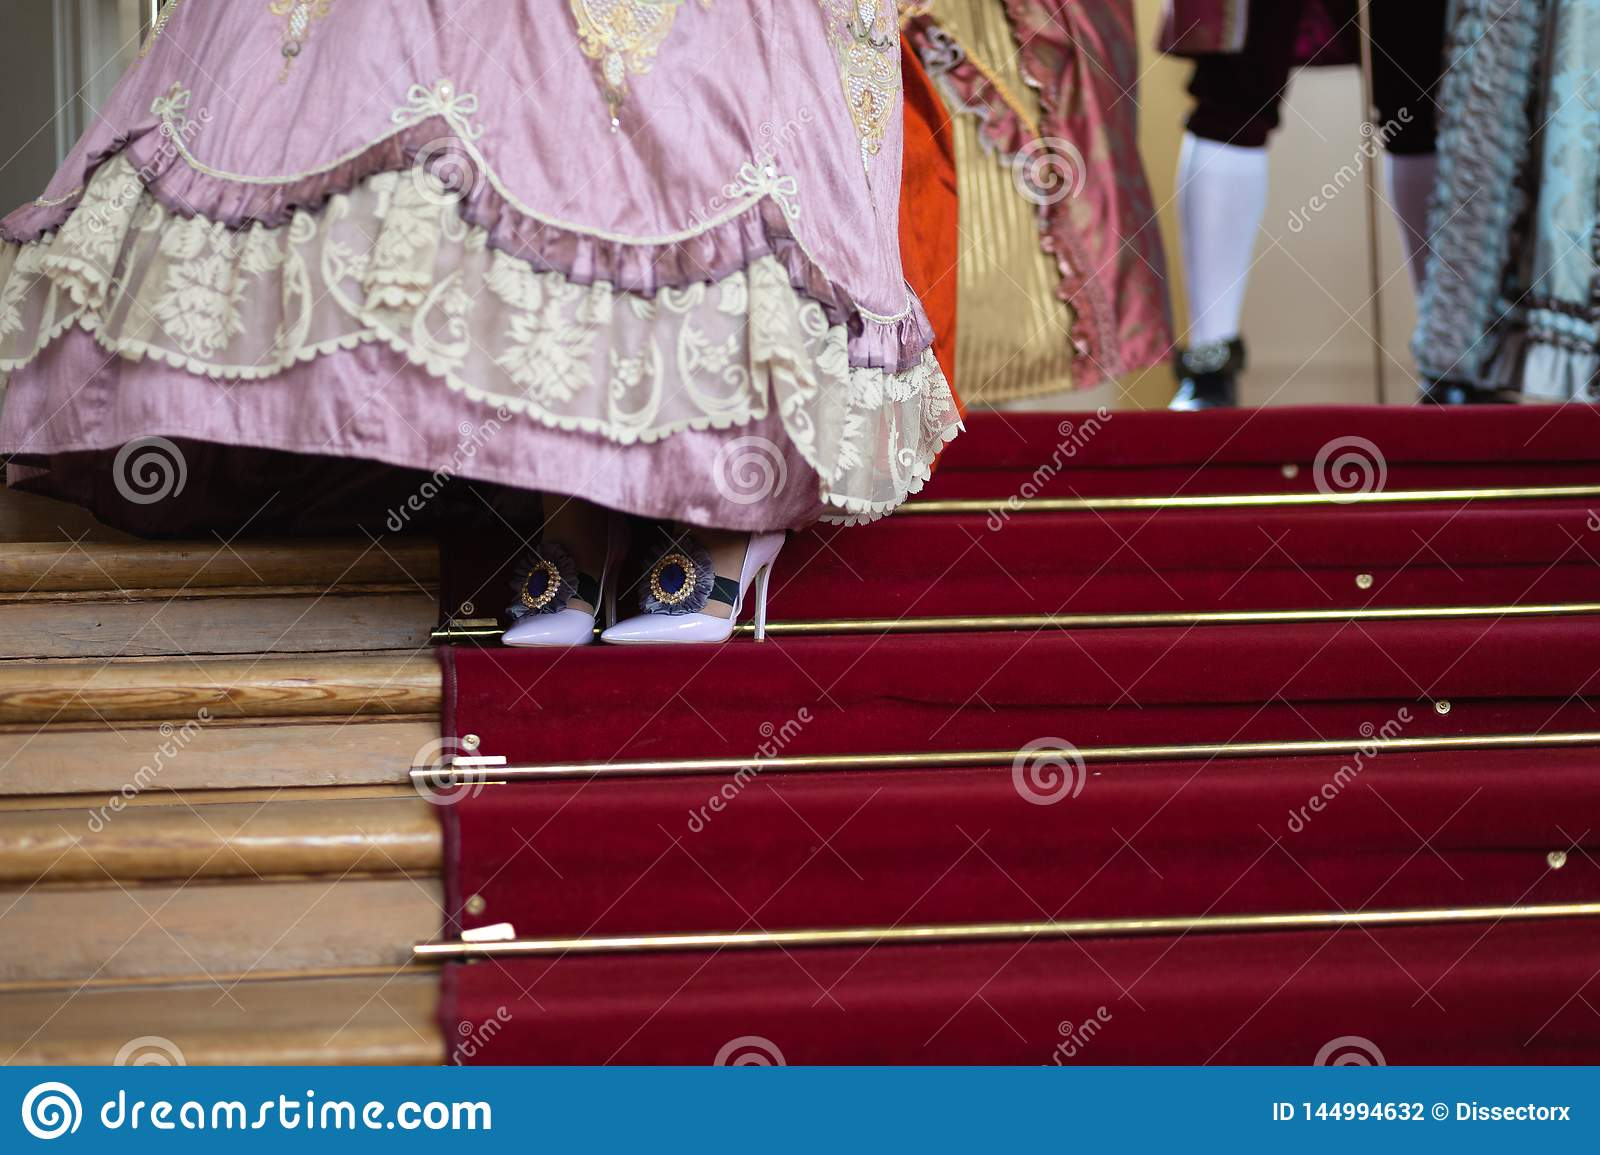 Shoes - Retro style royal medieval ball - Majestic palace with gorgeous people dressed in king and queen`s friends